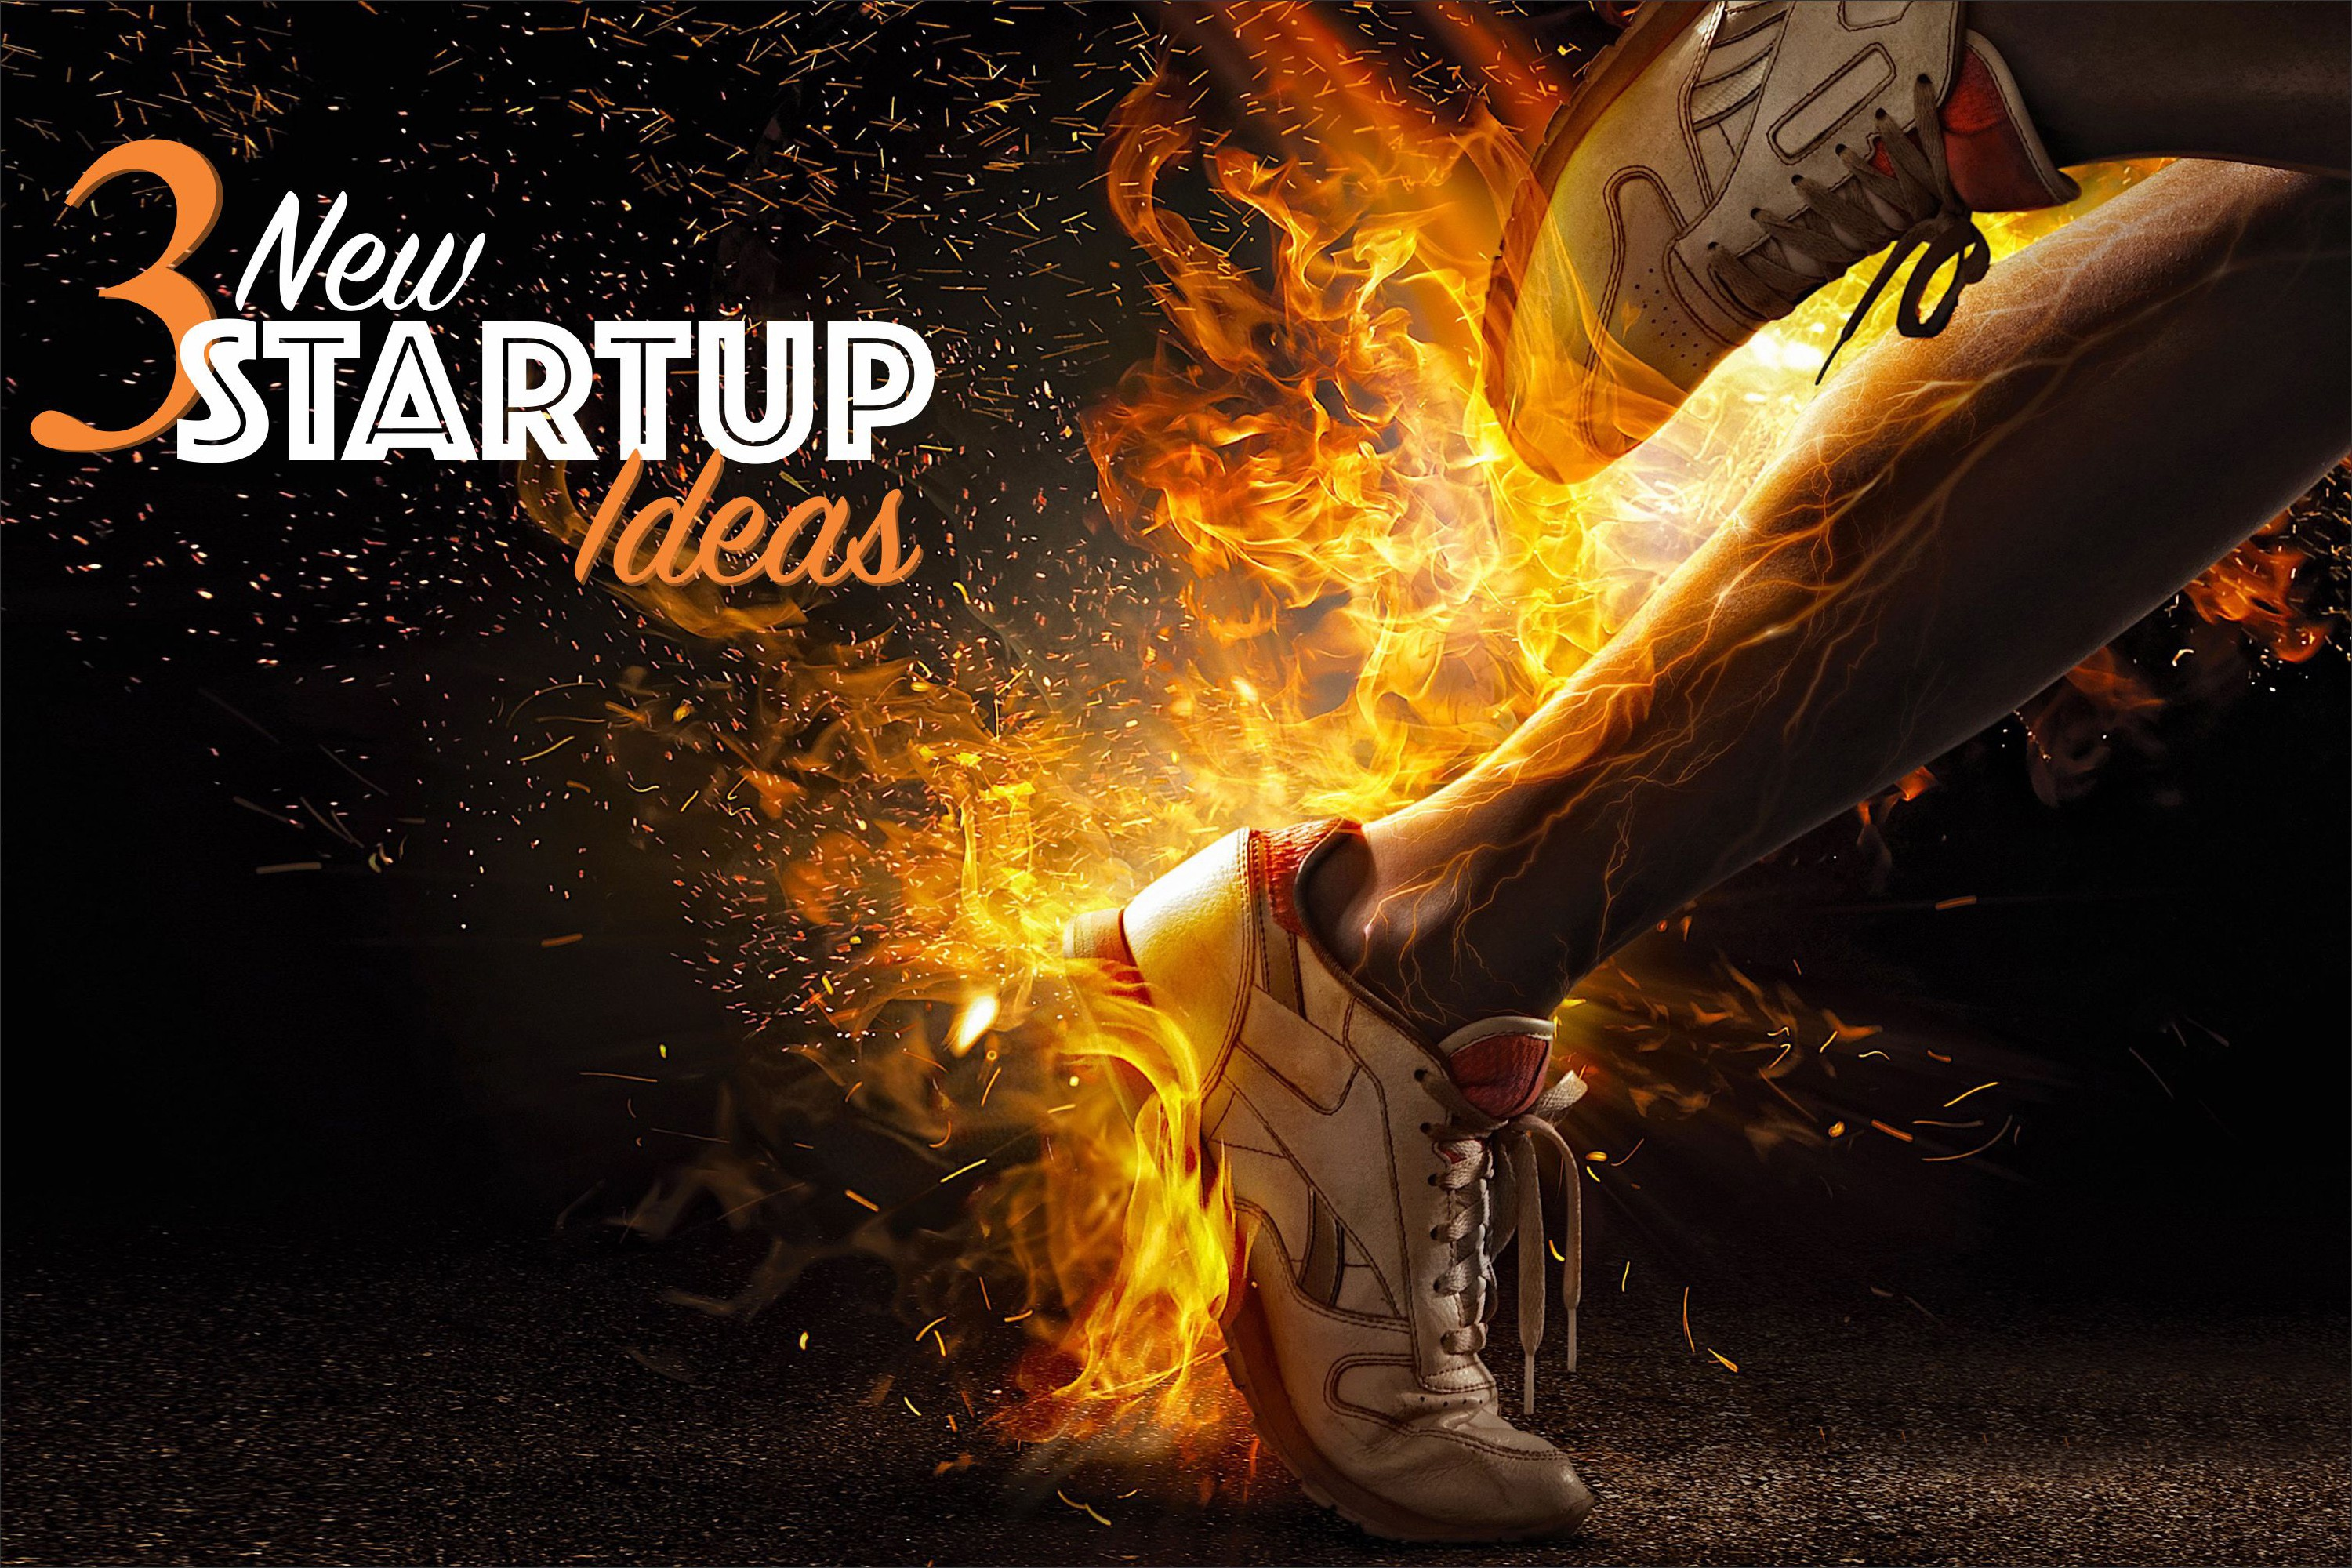 Startup ideas In India – 3 ways to kick start your entrepreneurial journey